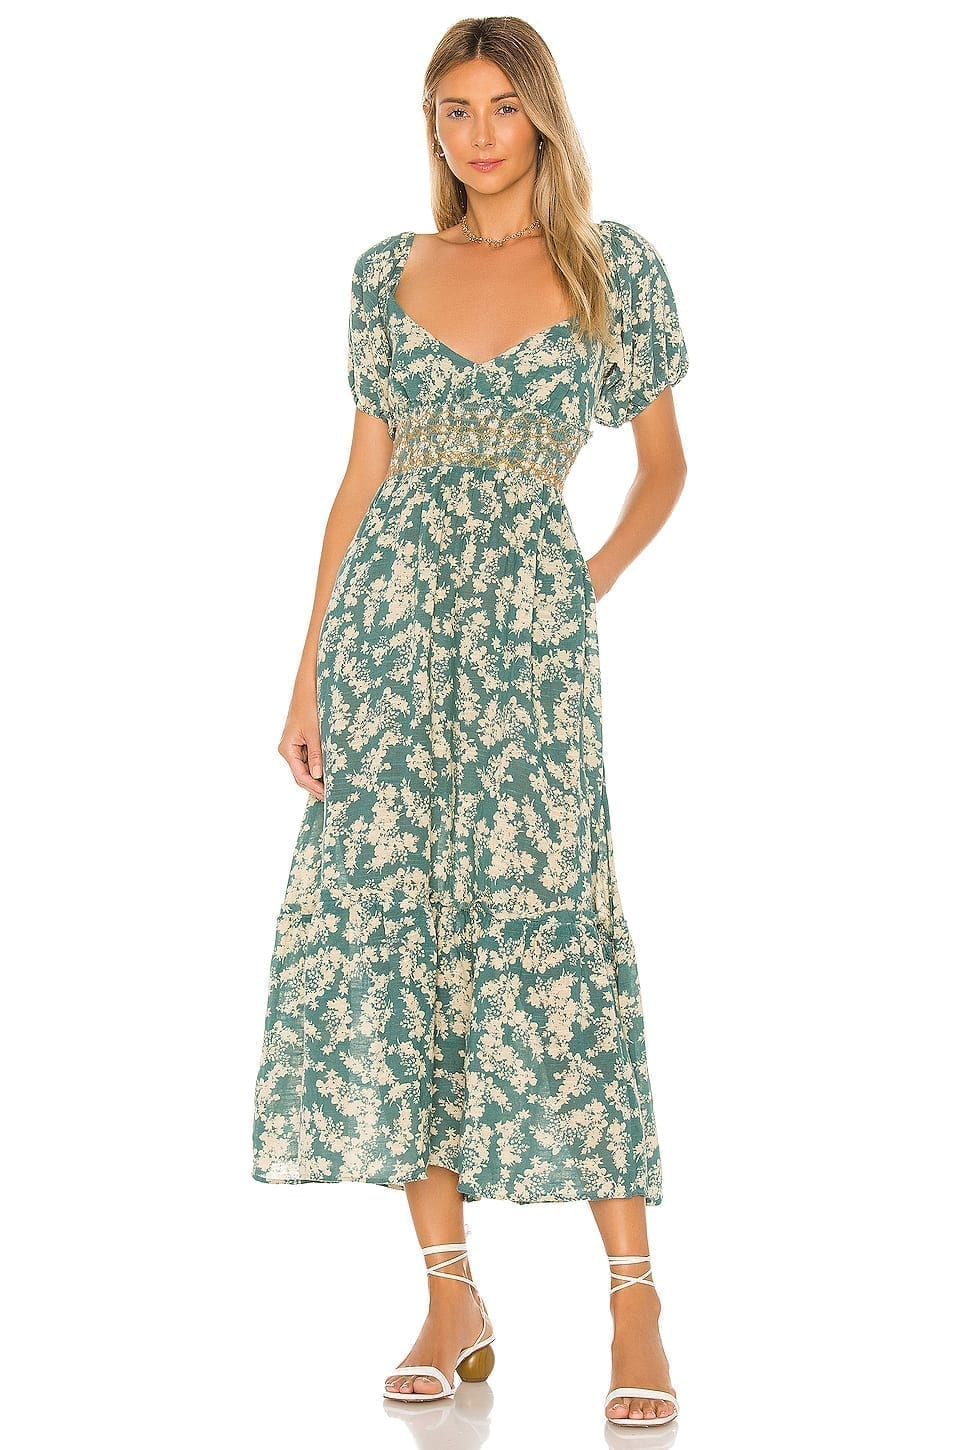 Tigerlily Bouquet Floral Maxi Dress in Navy   DAILYLOOK